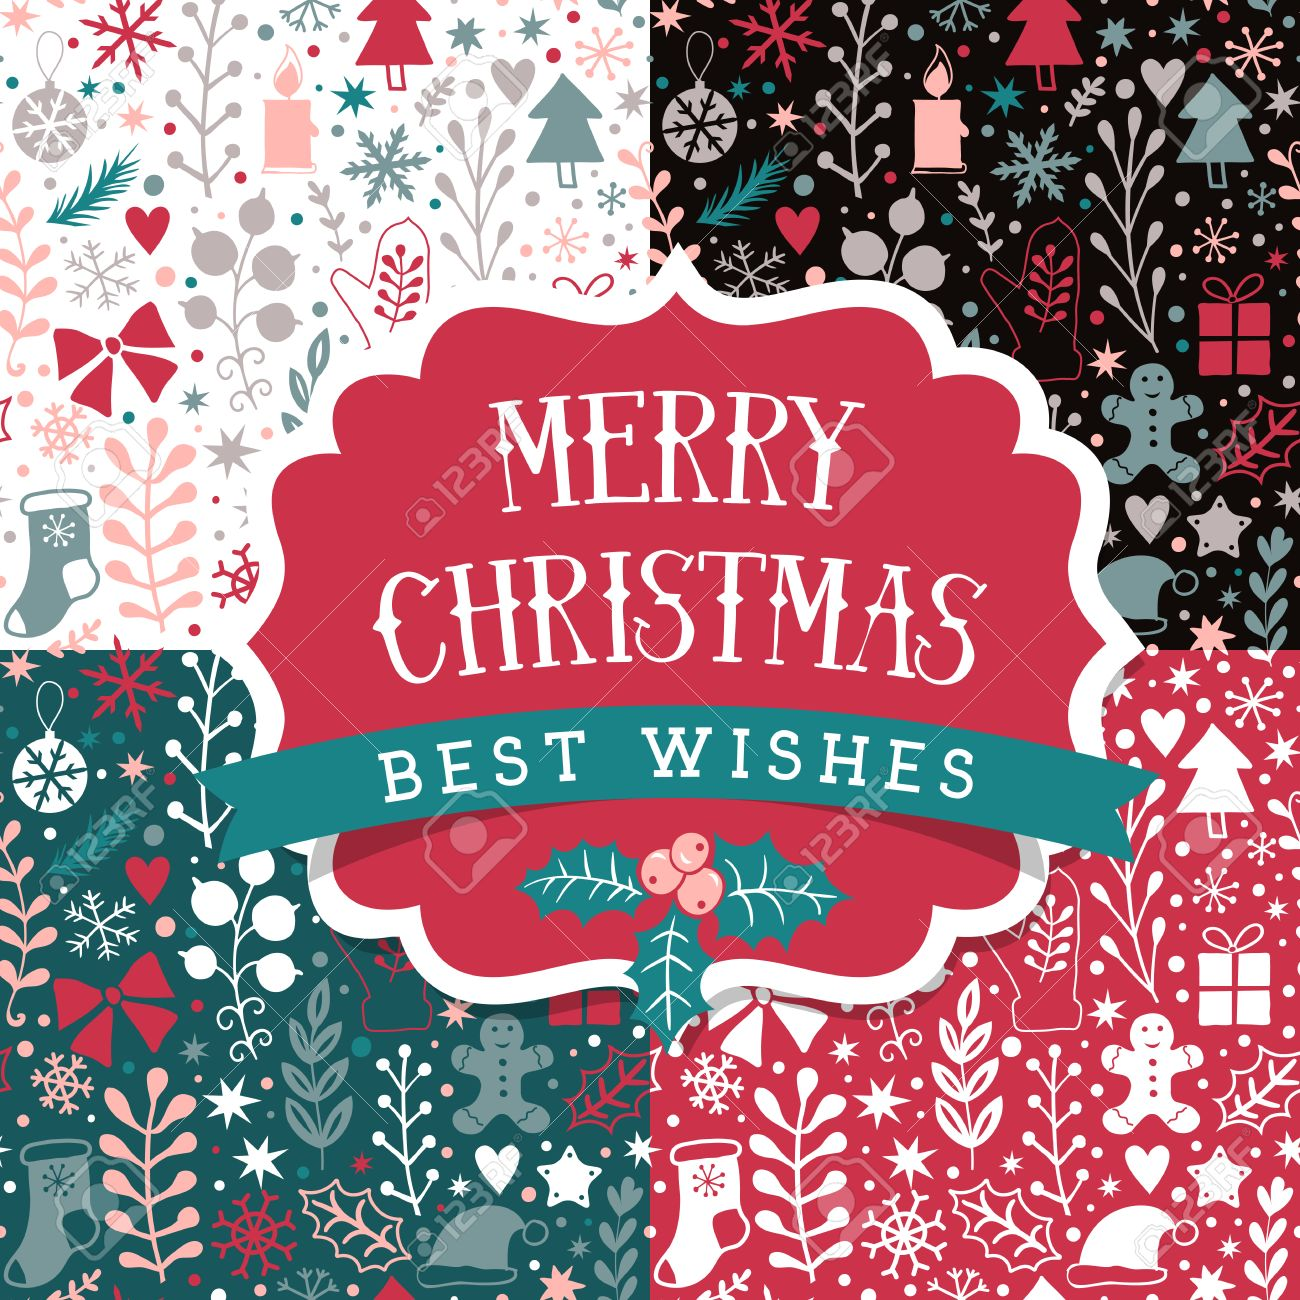 merry christmas seamless patterns set holidays layout retro label design happy new year